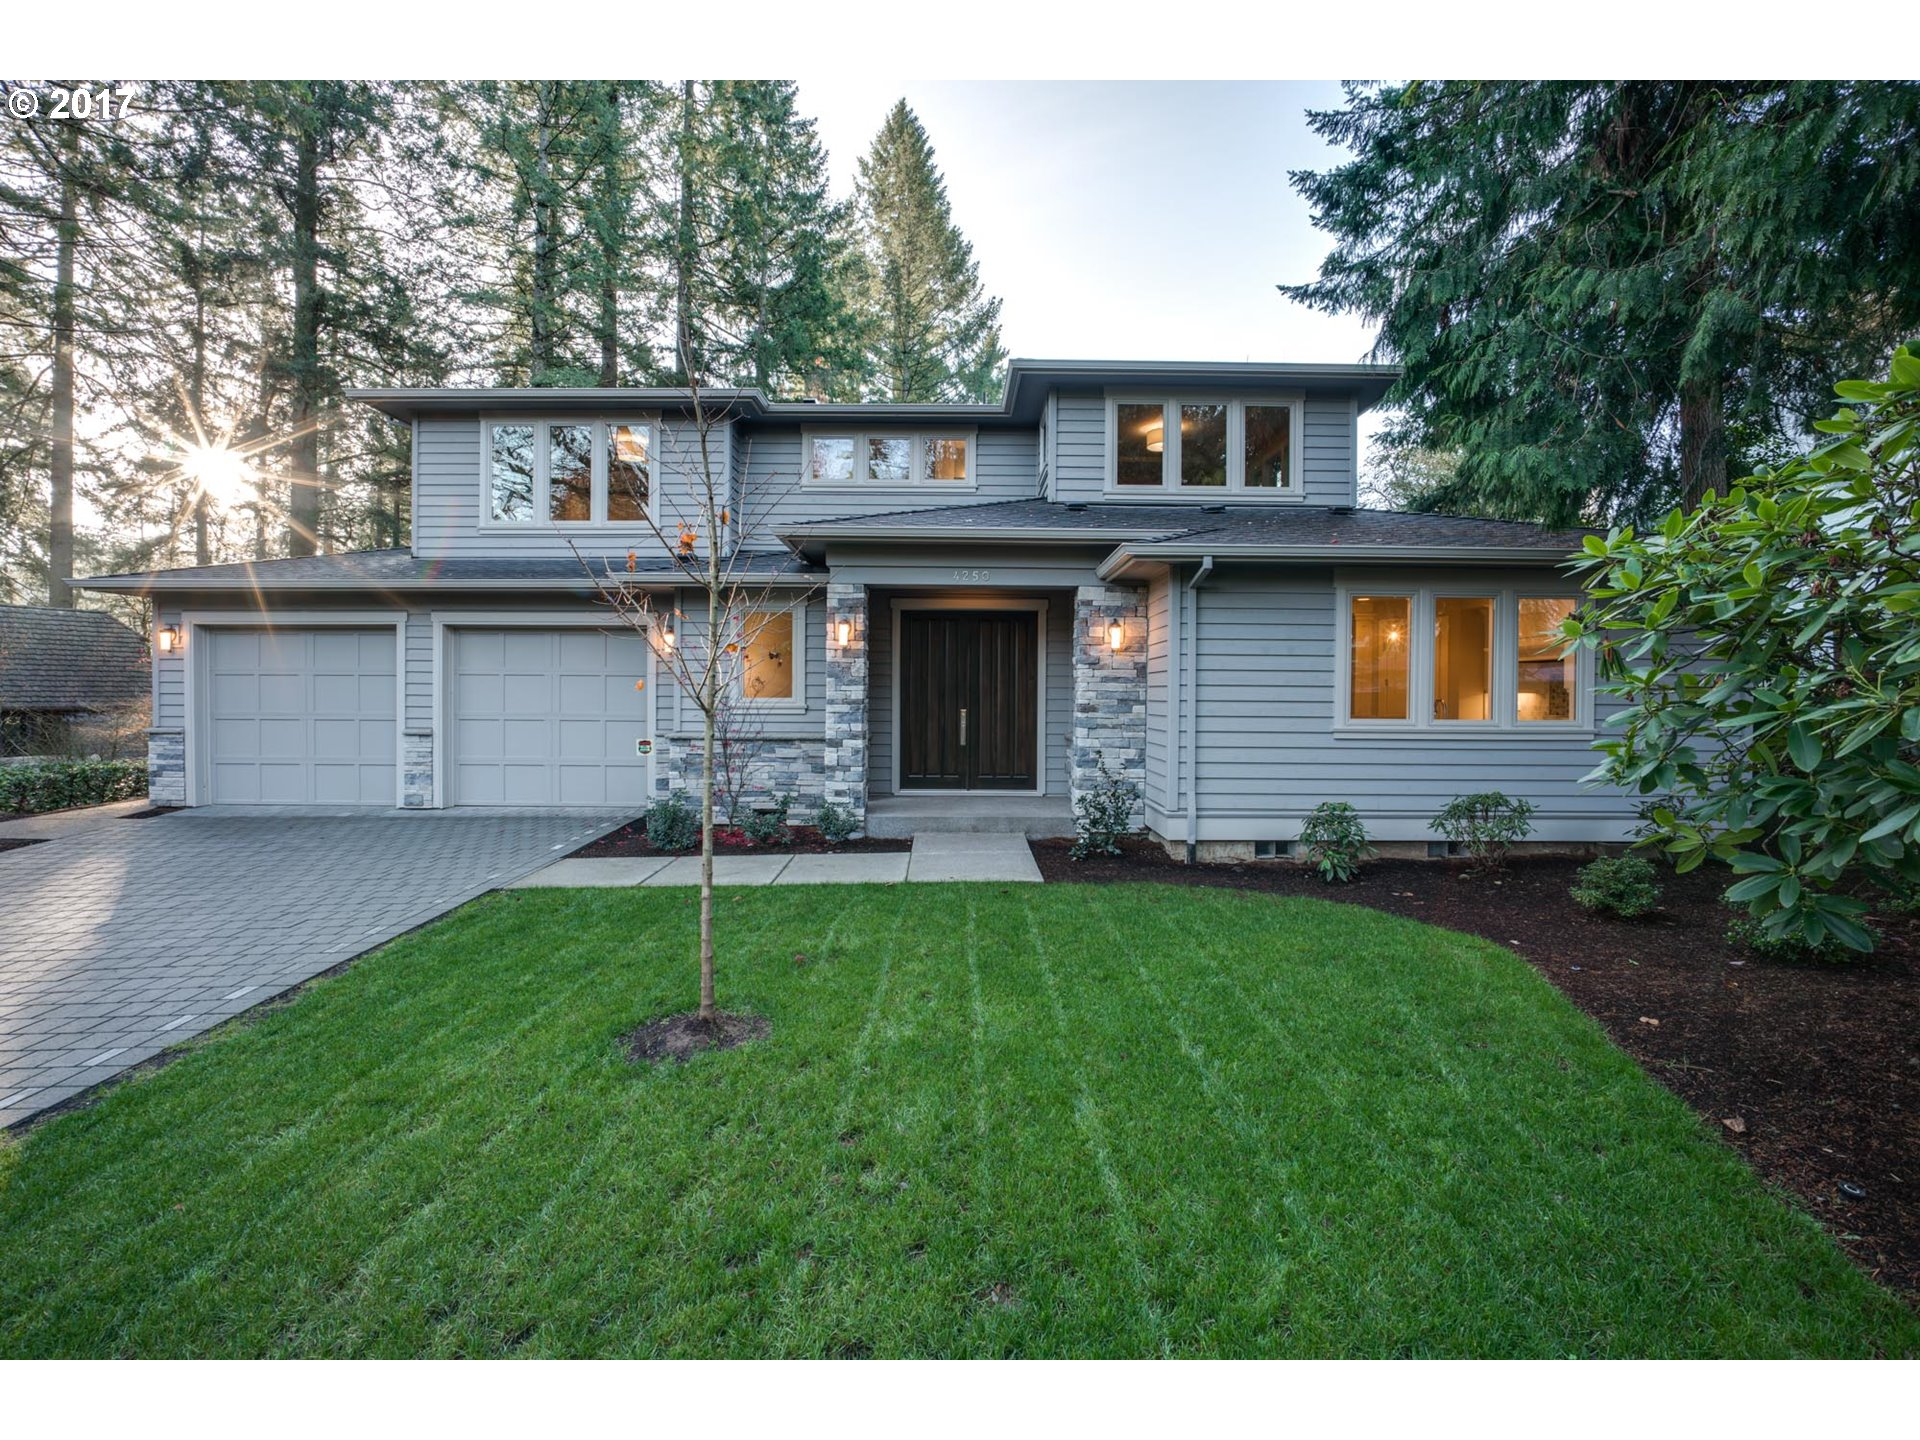 4250 LORDS LN, Lake Oswego, OR 97035